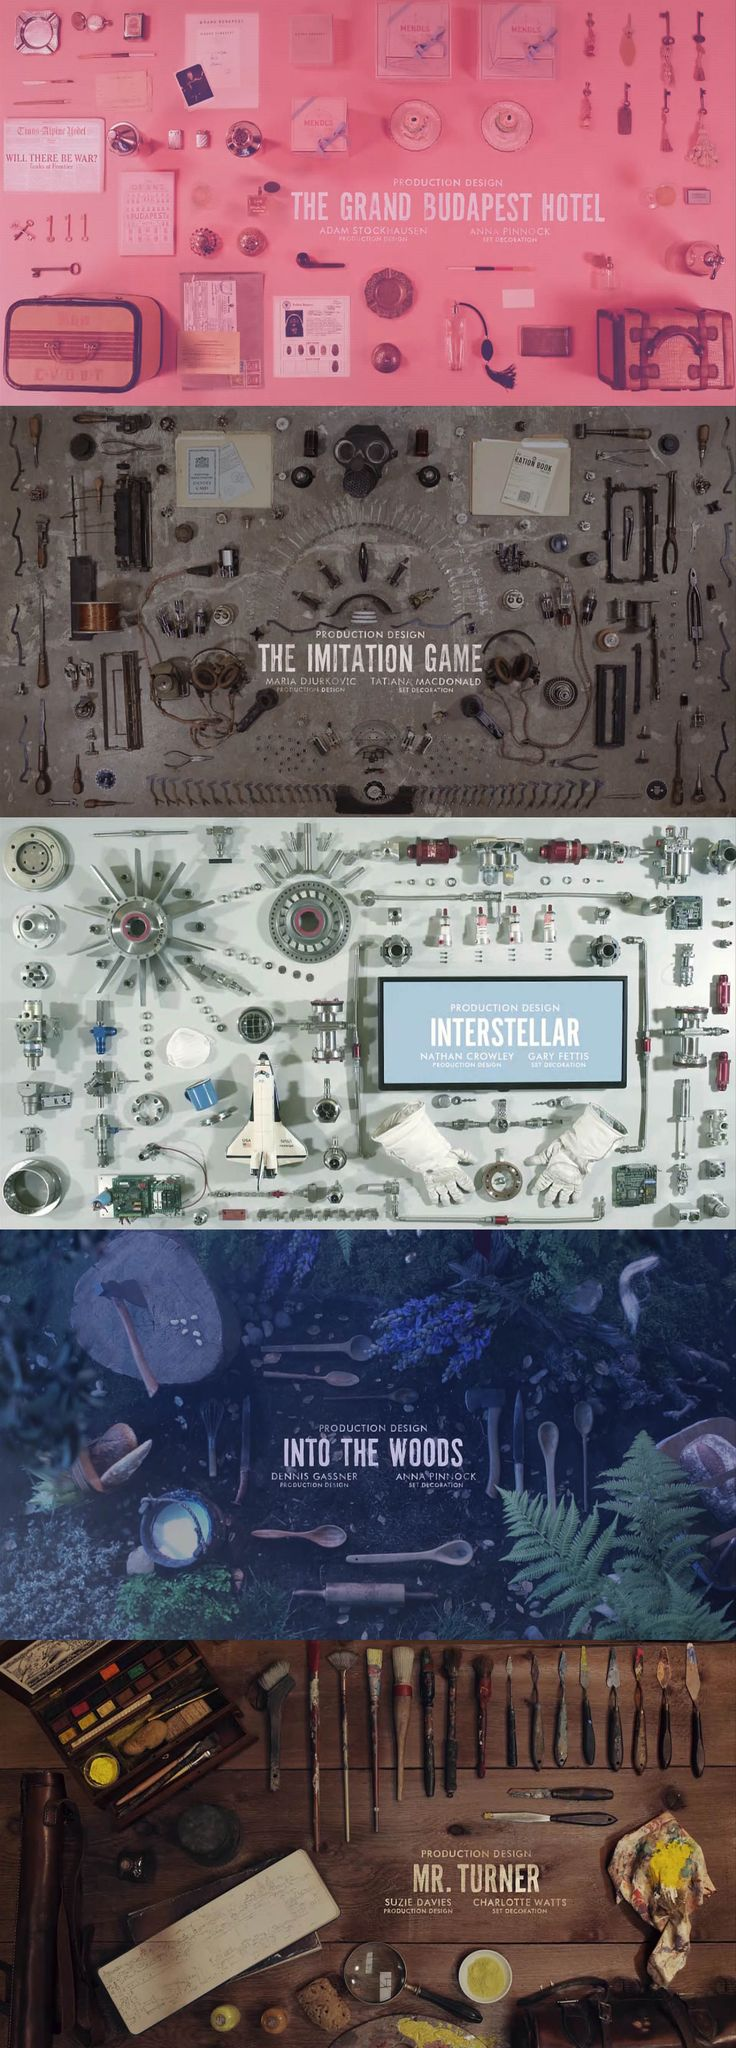 The beautiful Production Design nominee slides used at the Oscars. Featuring: The Grand Budapest Hotel, The Imitation Game, Interstellar, Into The Woods, & Mr. Turner.